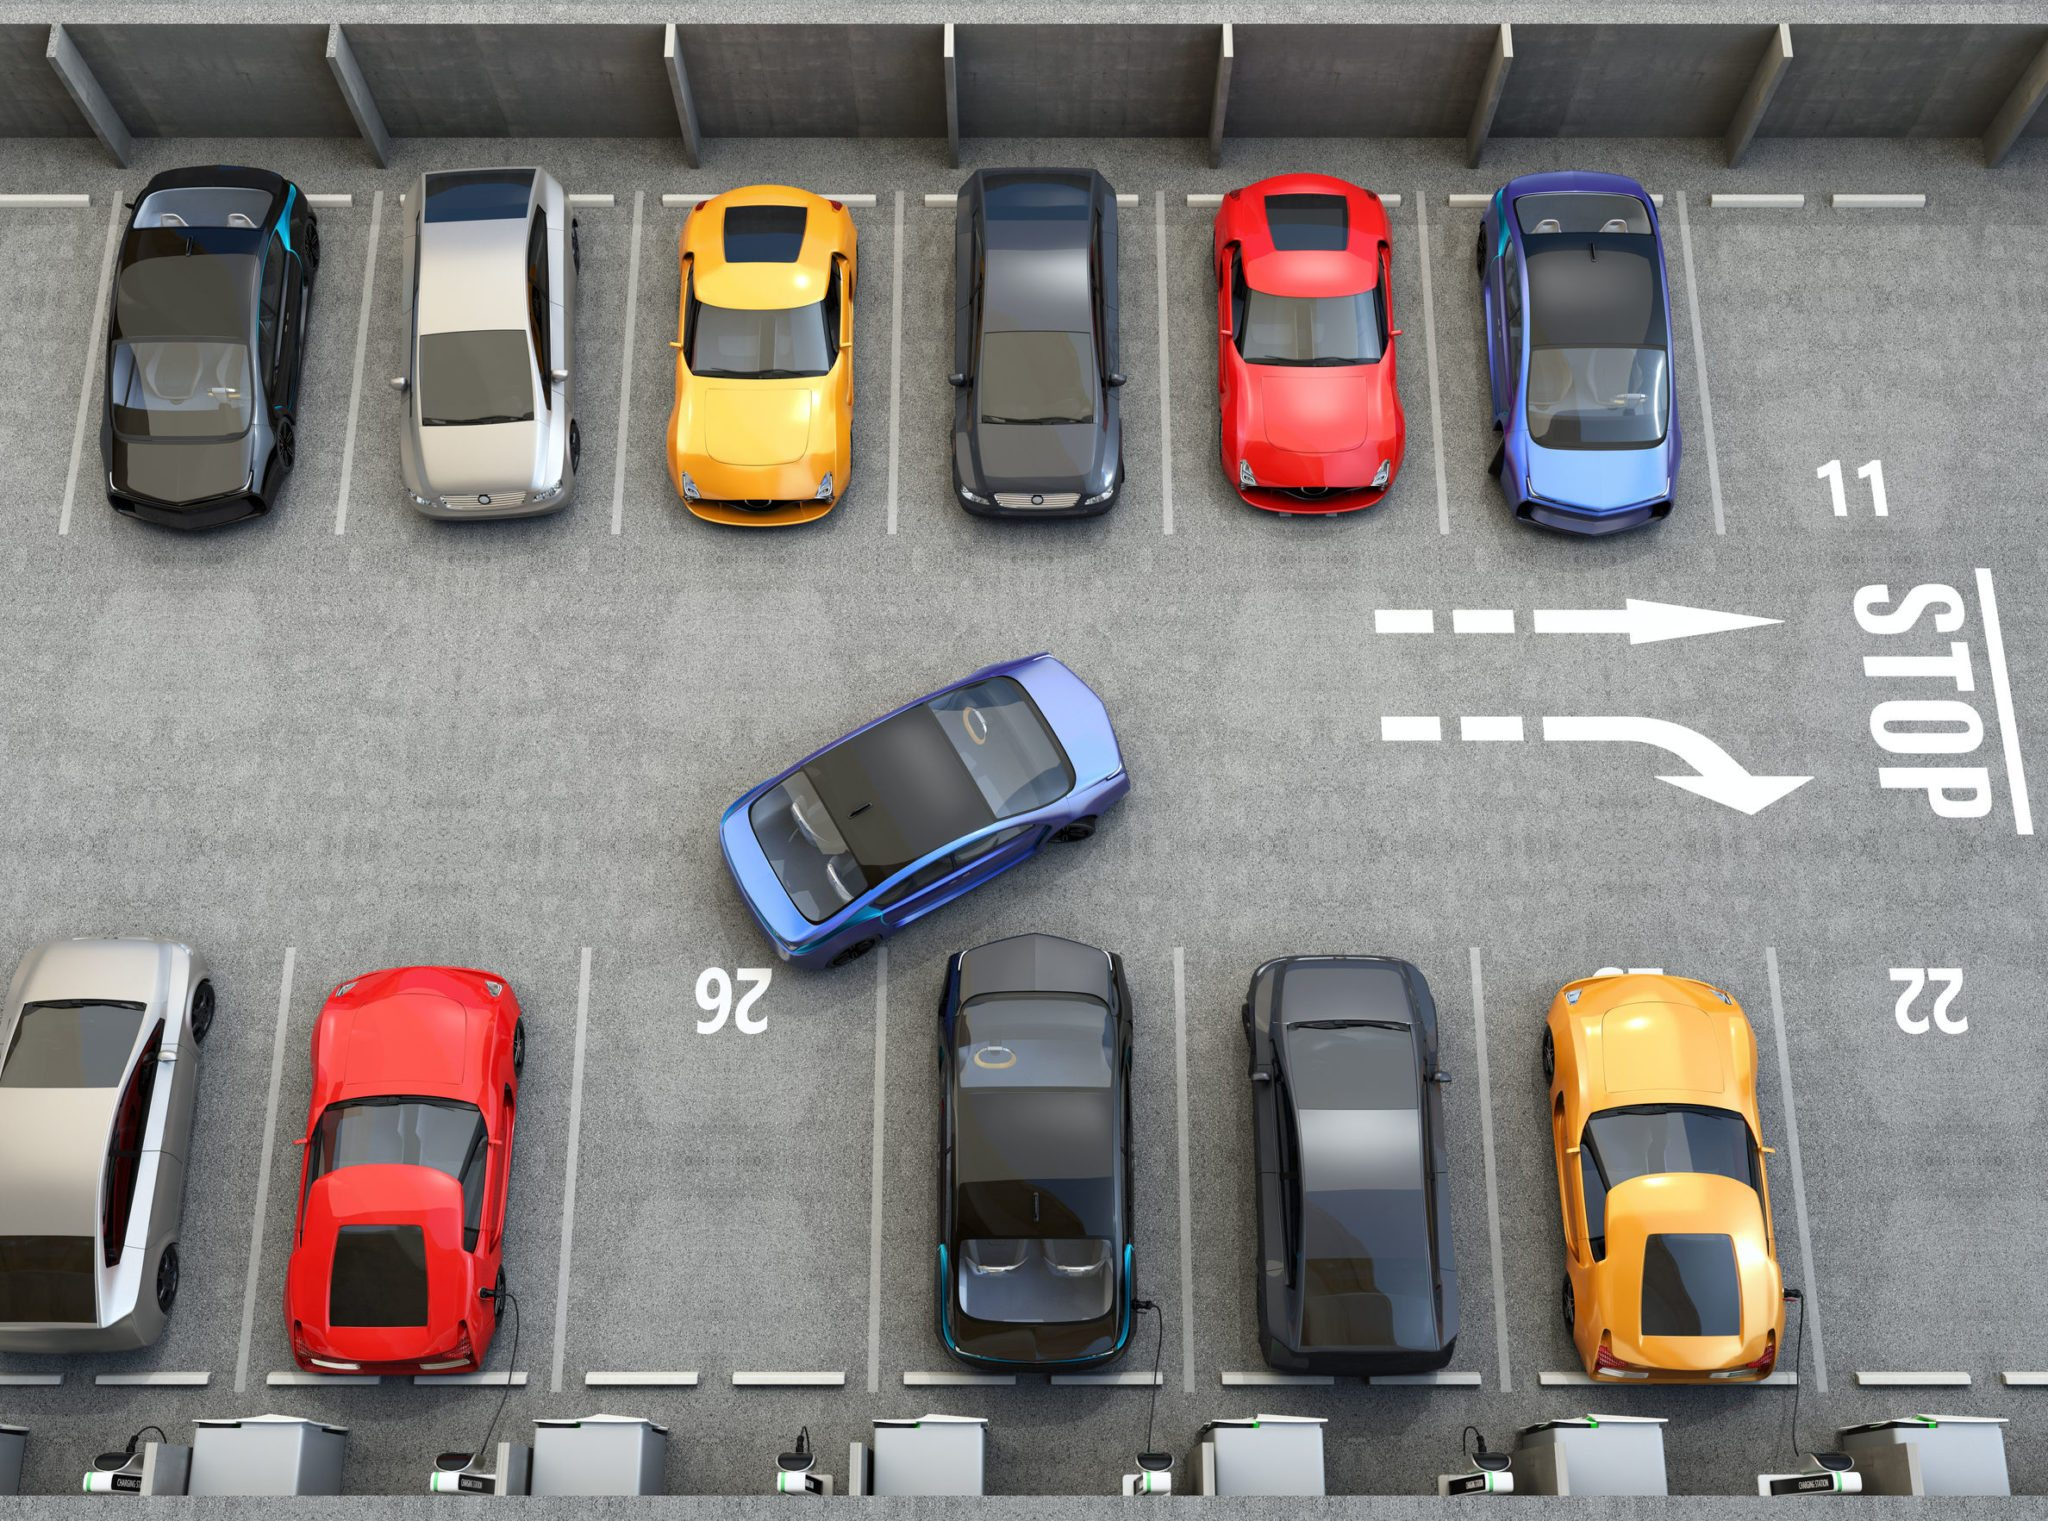 Smart Parking Is Emerging As A Key Iot Use Case